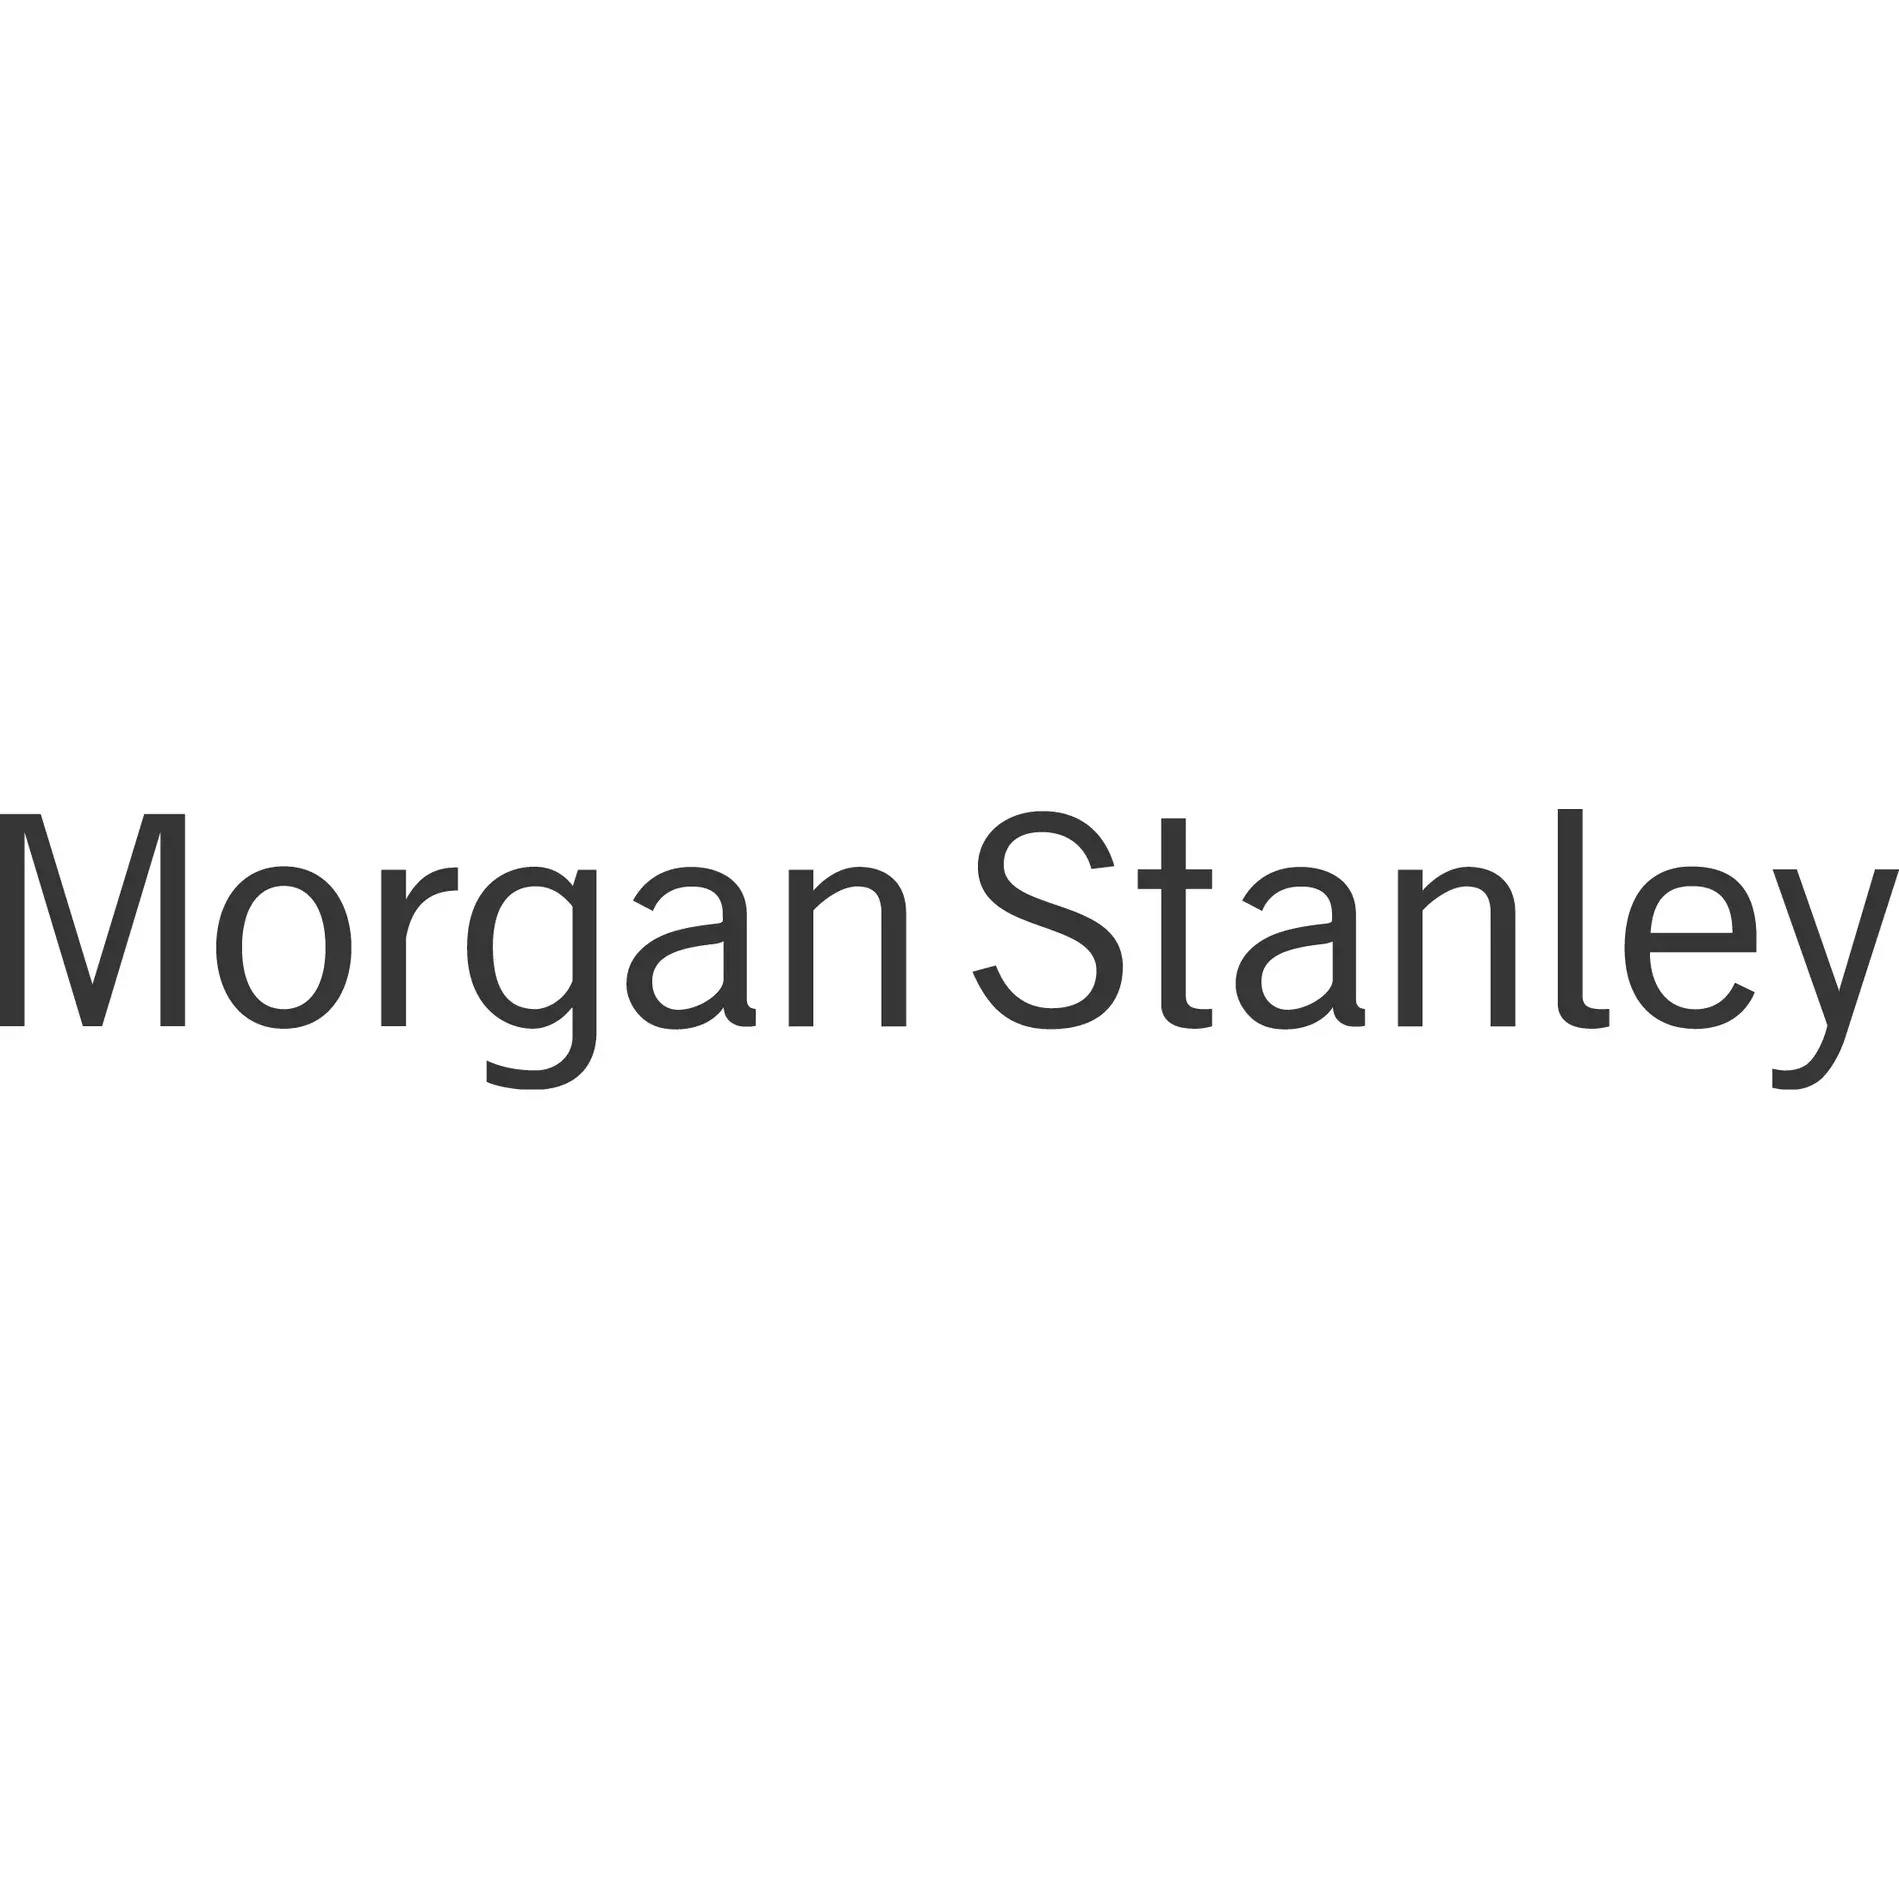 Troy Pinkelman - Morgan Stanley | Financial Advisor in Las Vegas,Nevada